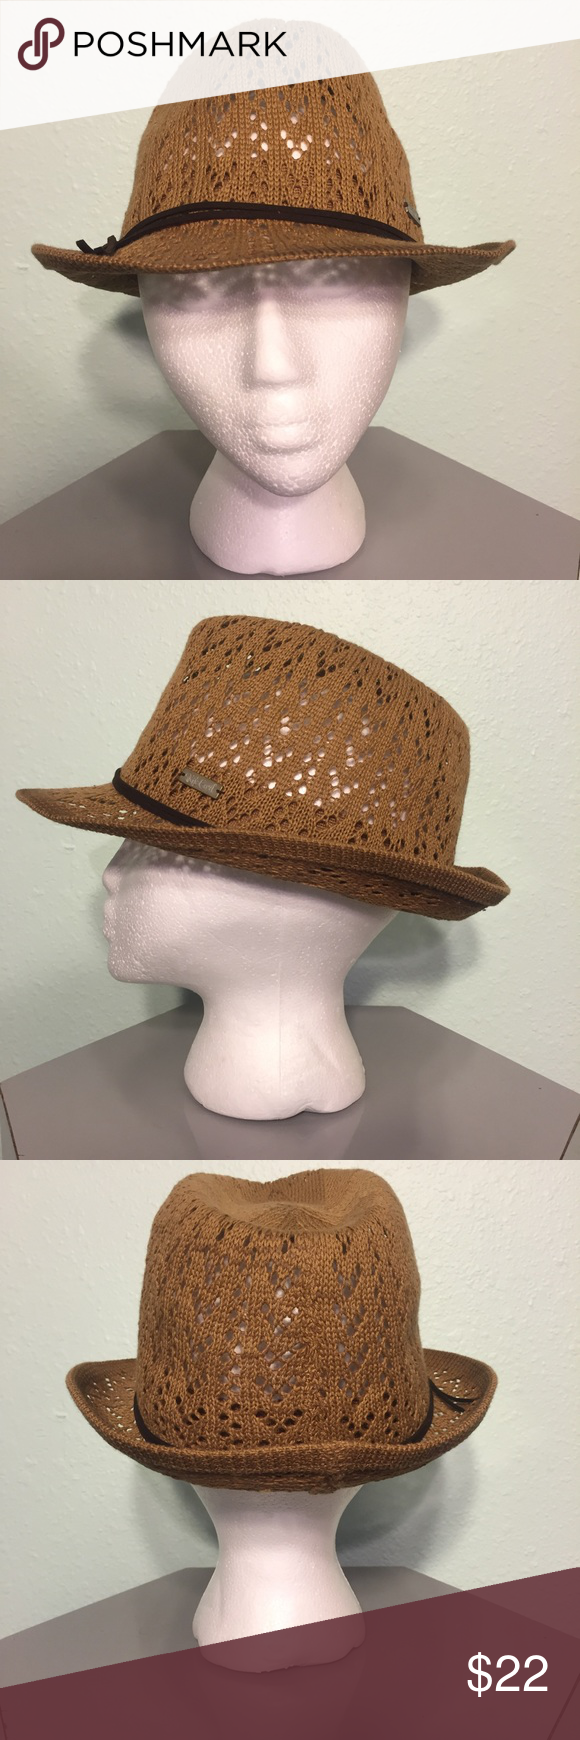 NWOT - Rip Curl Crochet Fedora Rip Curl Crochet Fedora  Crochet with ombré color on brim. Metal badge and faux leather ties around band.  Sample stamp on inside of band, but not visible when worn.  Never worn, but no tags. Perfect Condition.  Feel free to make me an offer.  Discounts on bundles. Rip Curl Accessories Hats